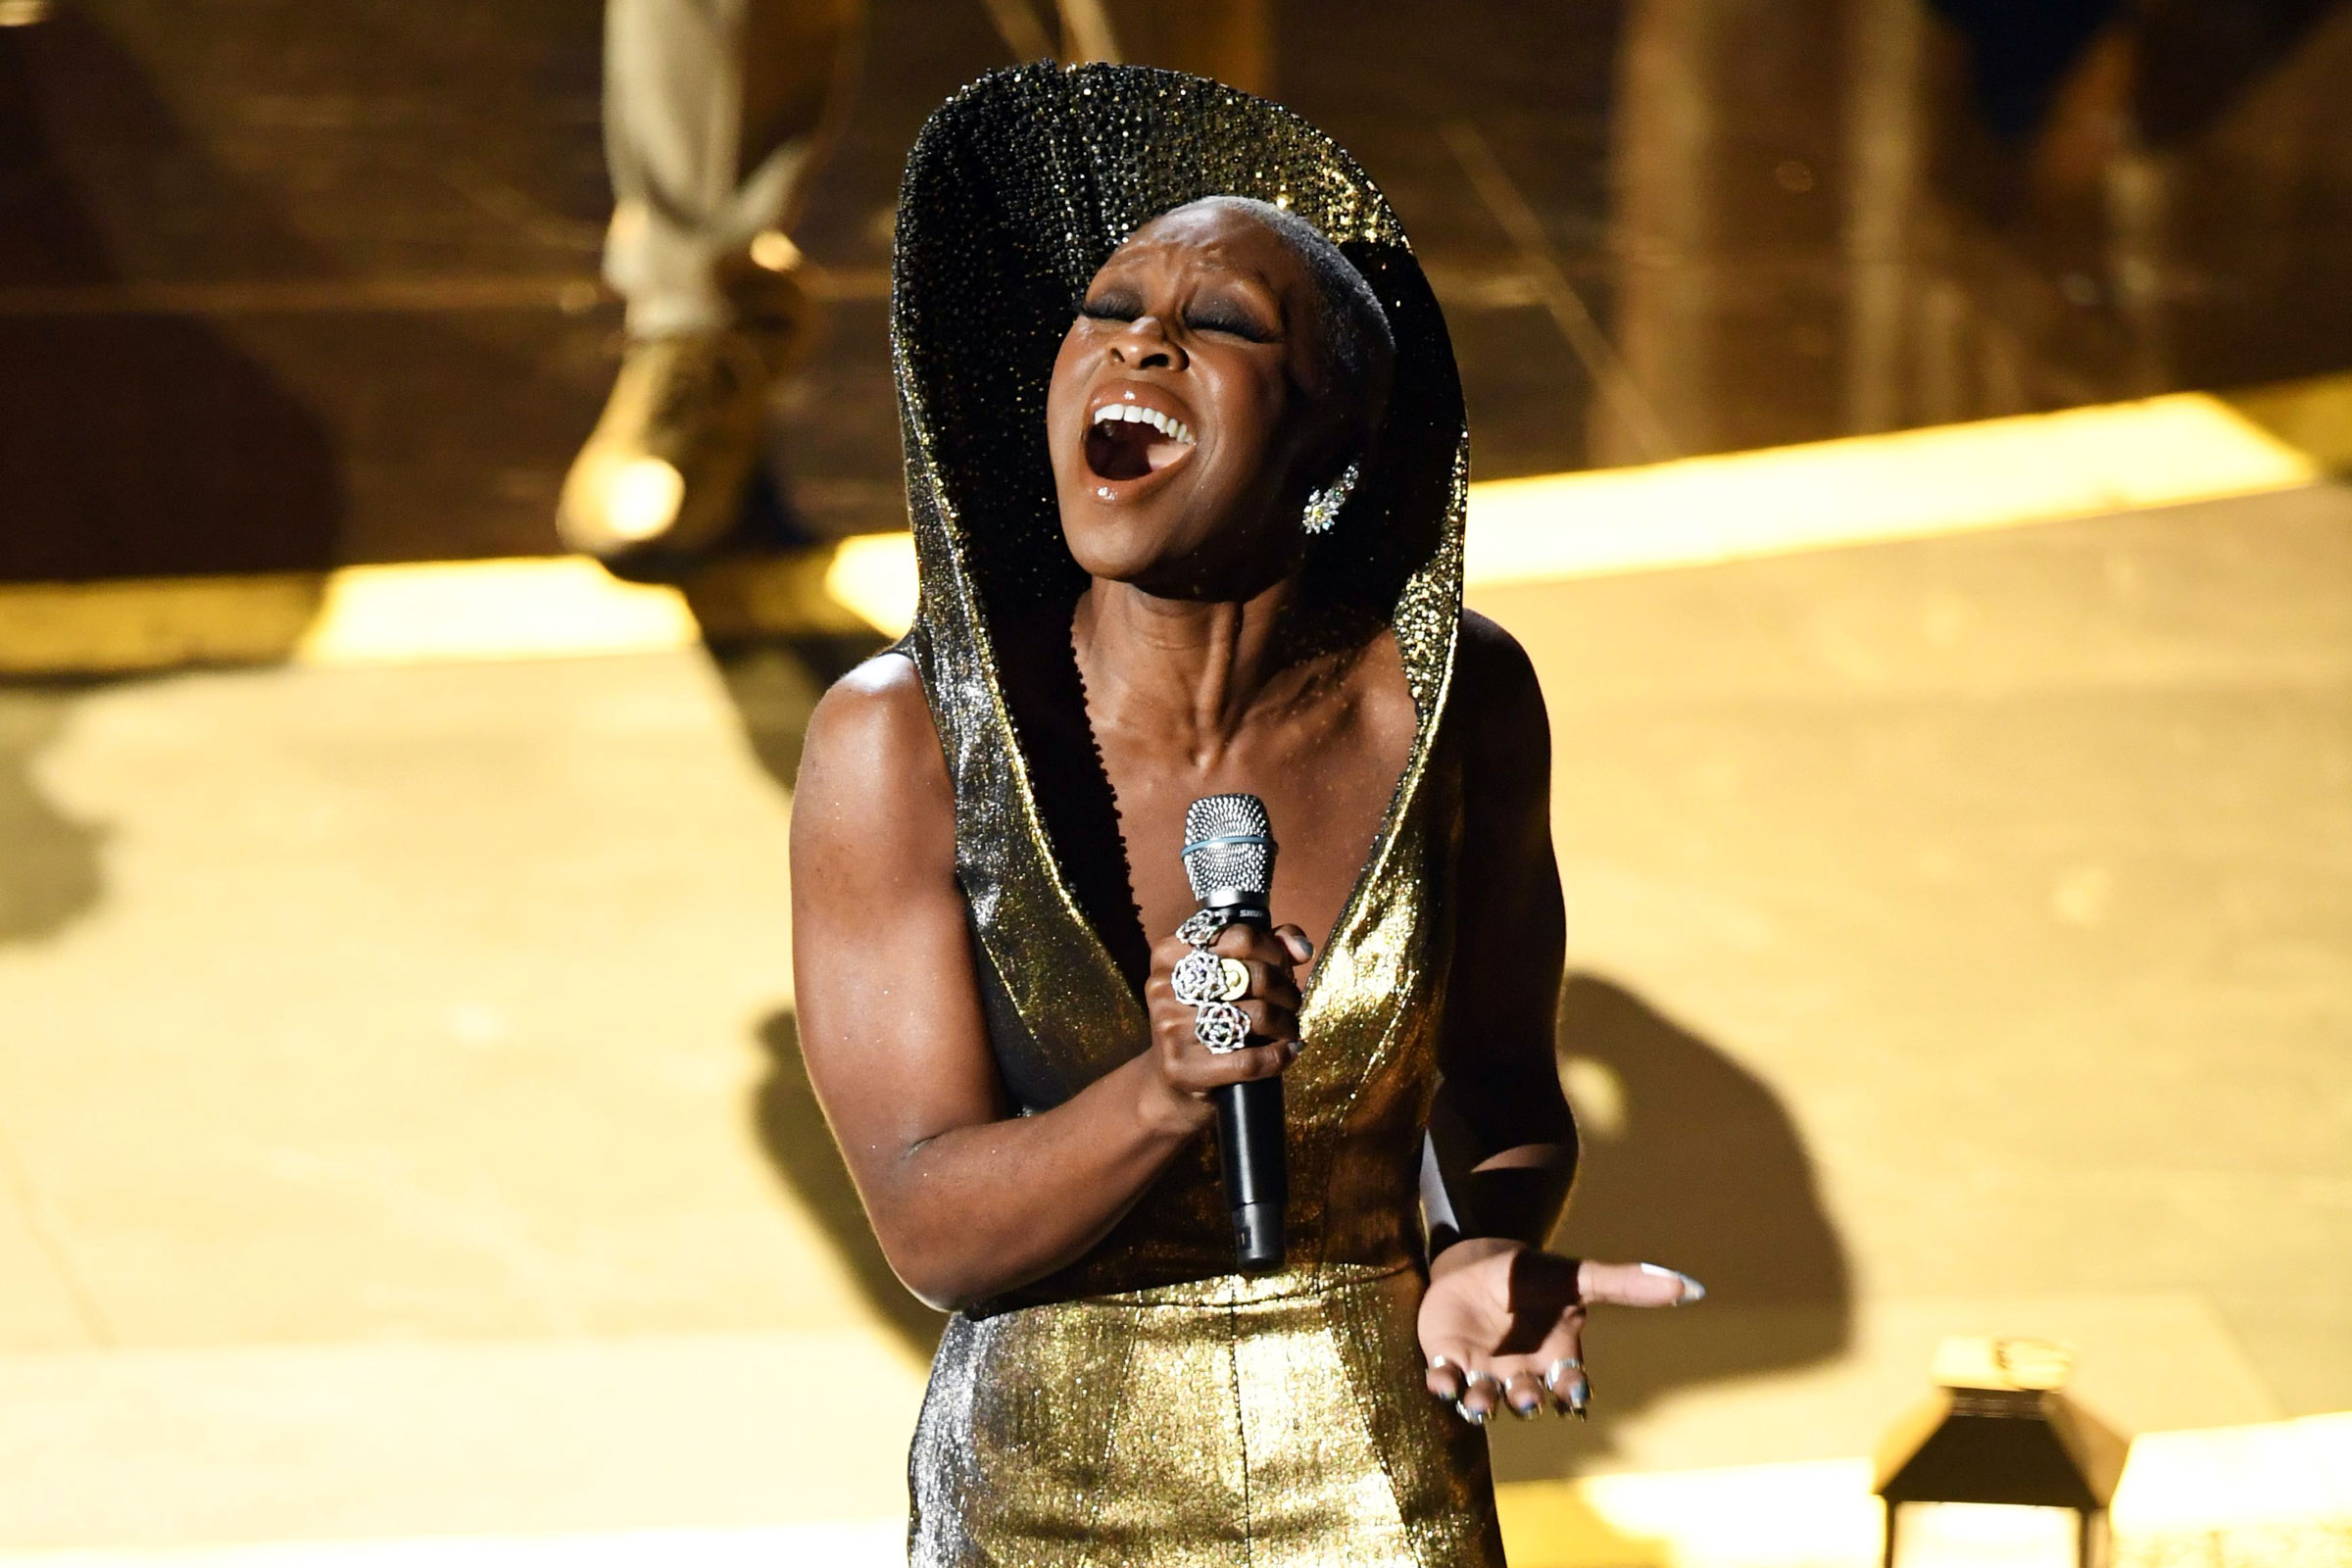 Cynthia Erivo Performed 'Stand Up' at the Oscars Backed by Gospel Singers